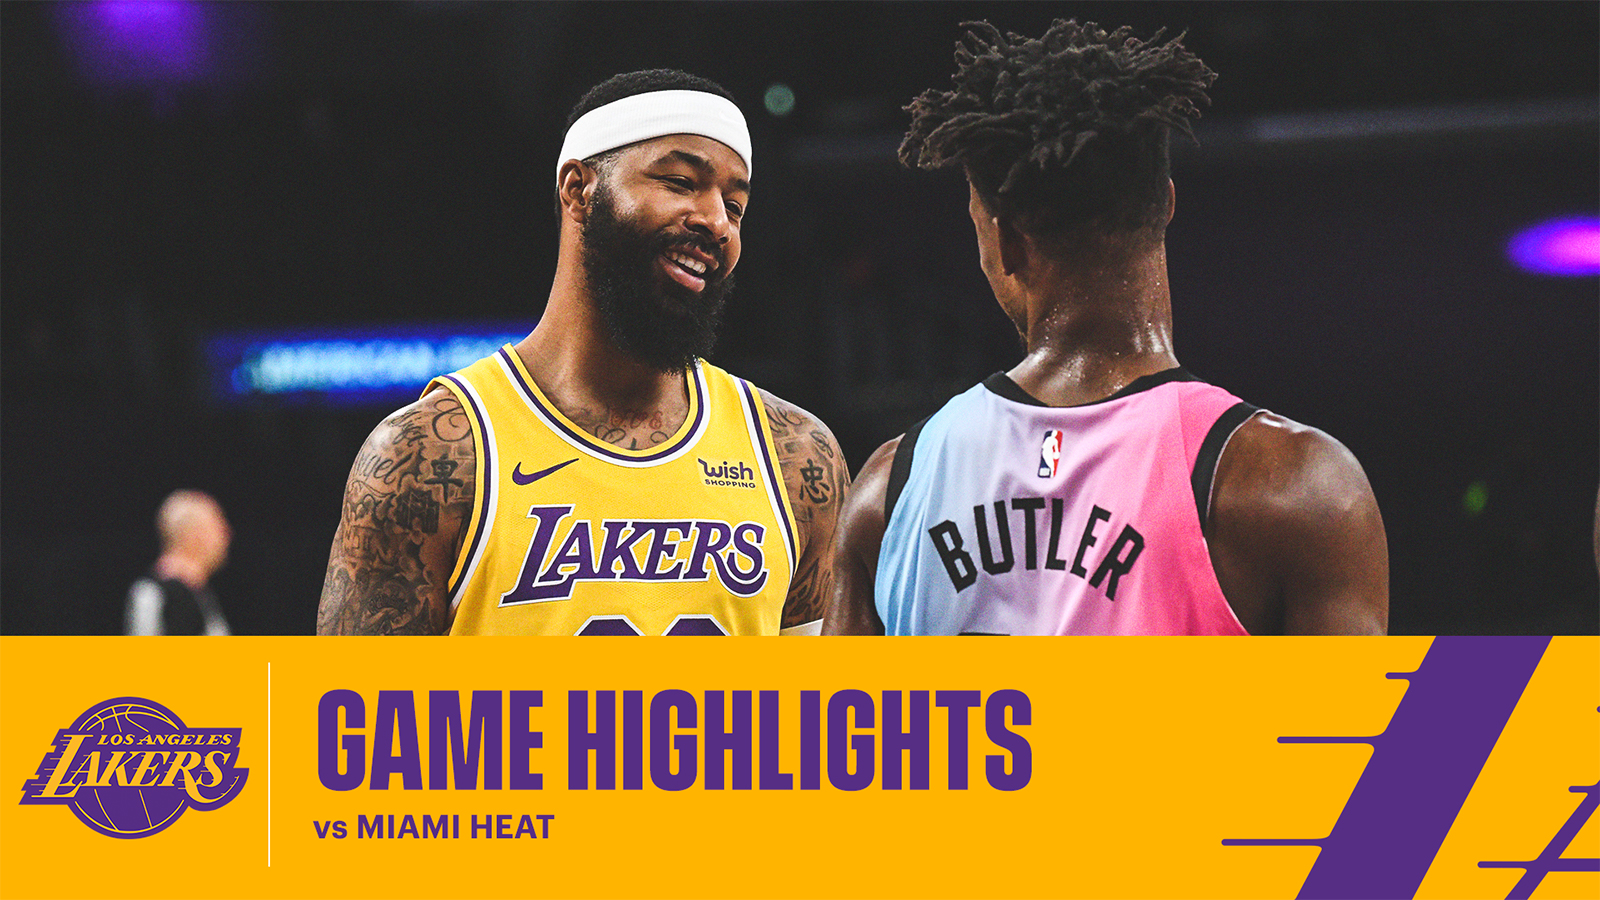 HIGHLIGHTS | Los Angeles Lakers vs Miami Heat